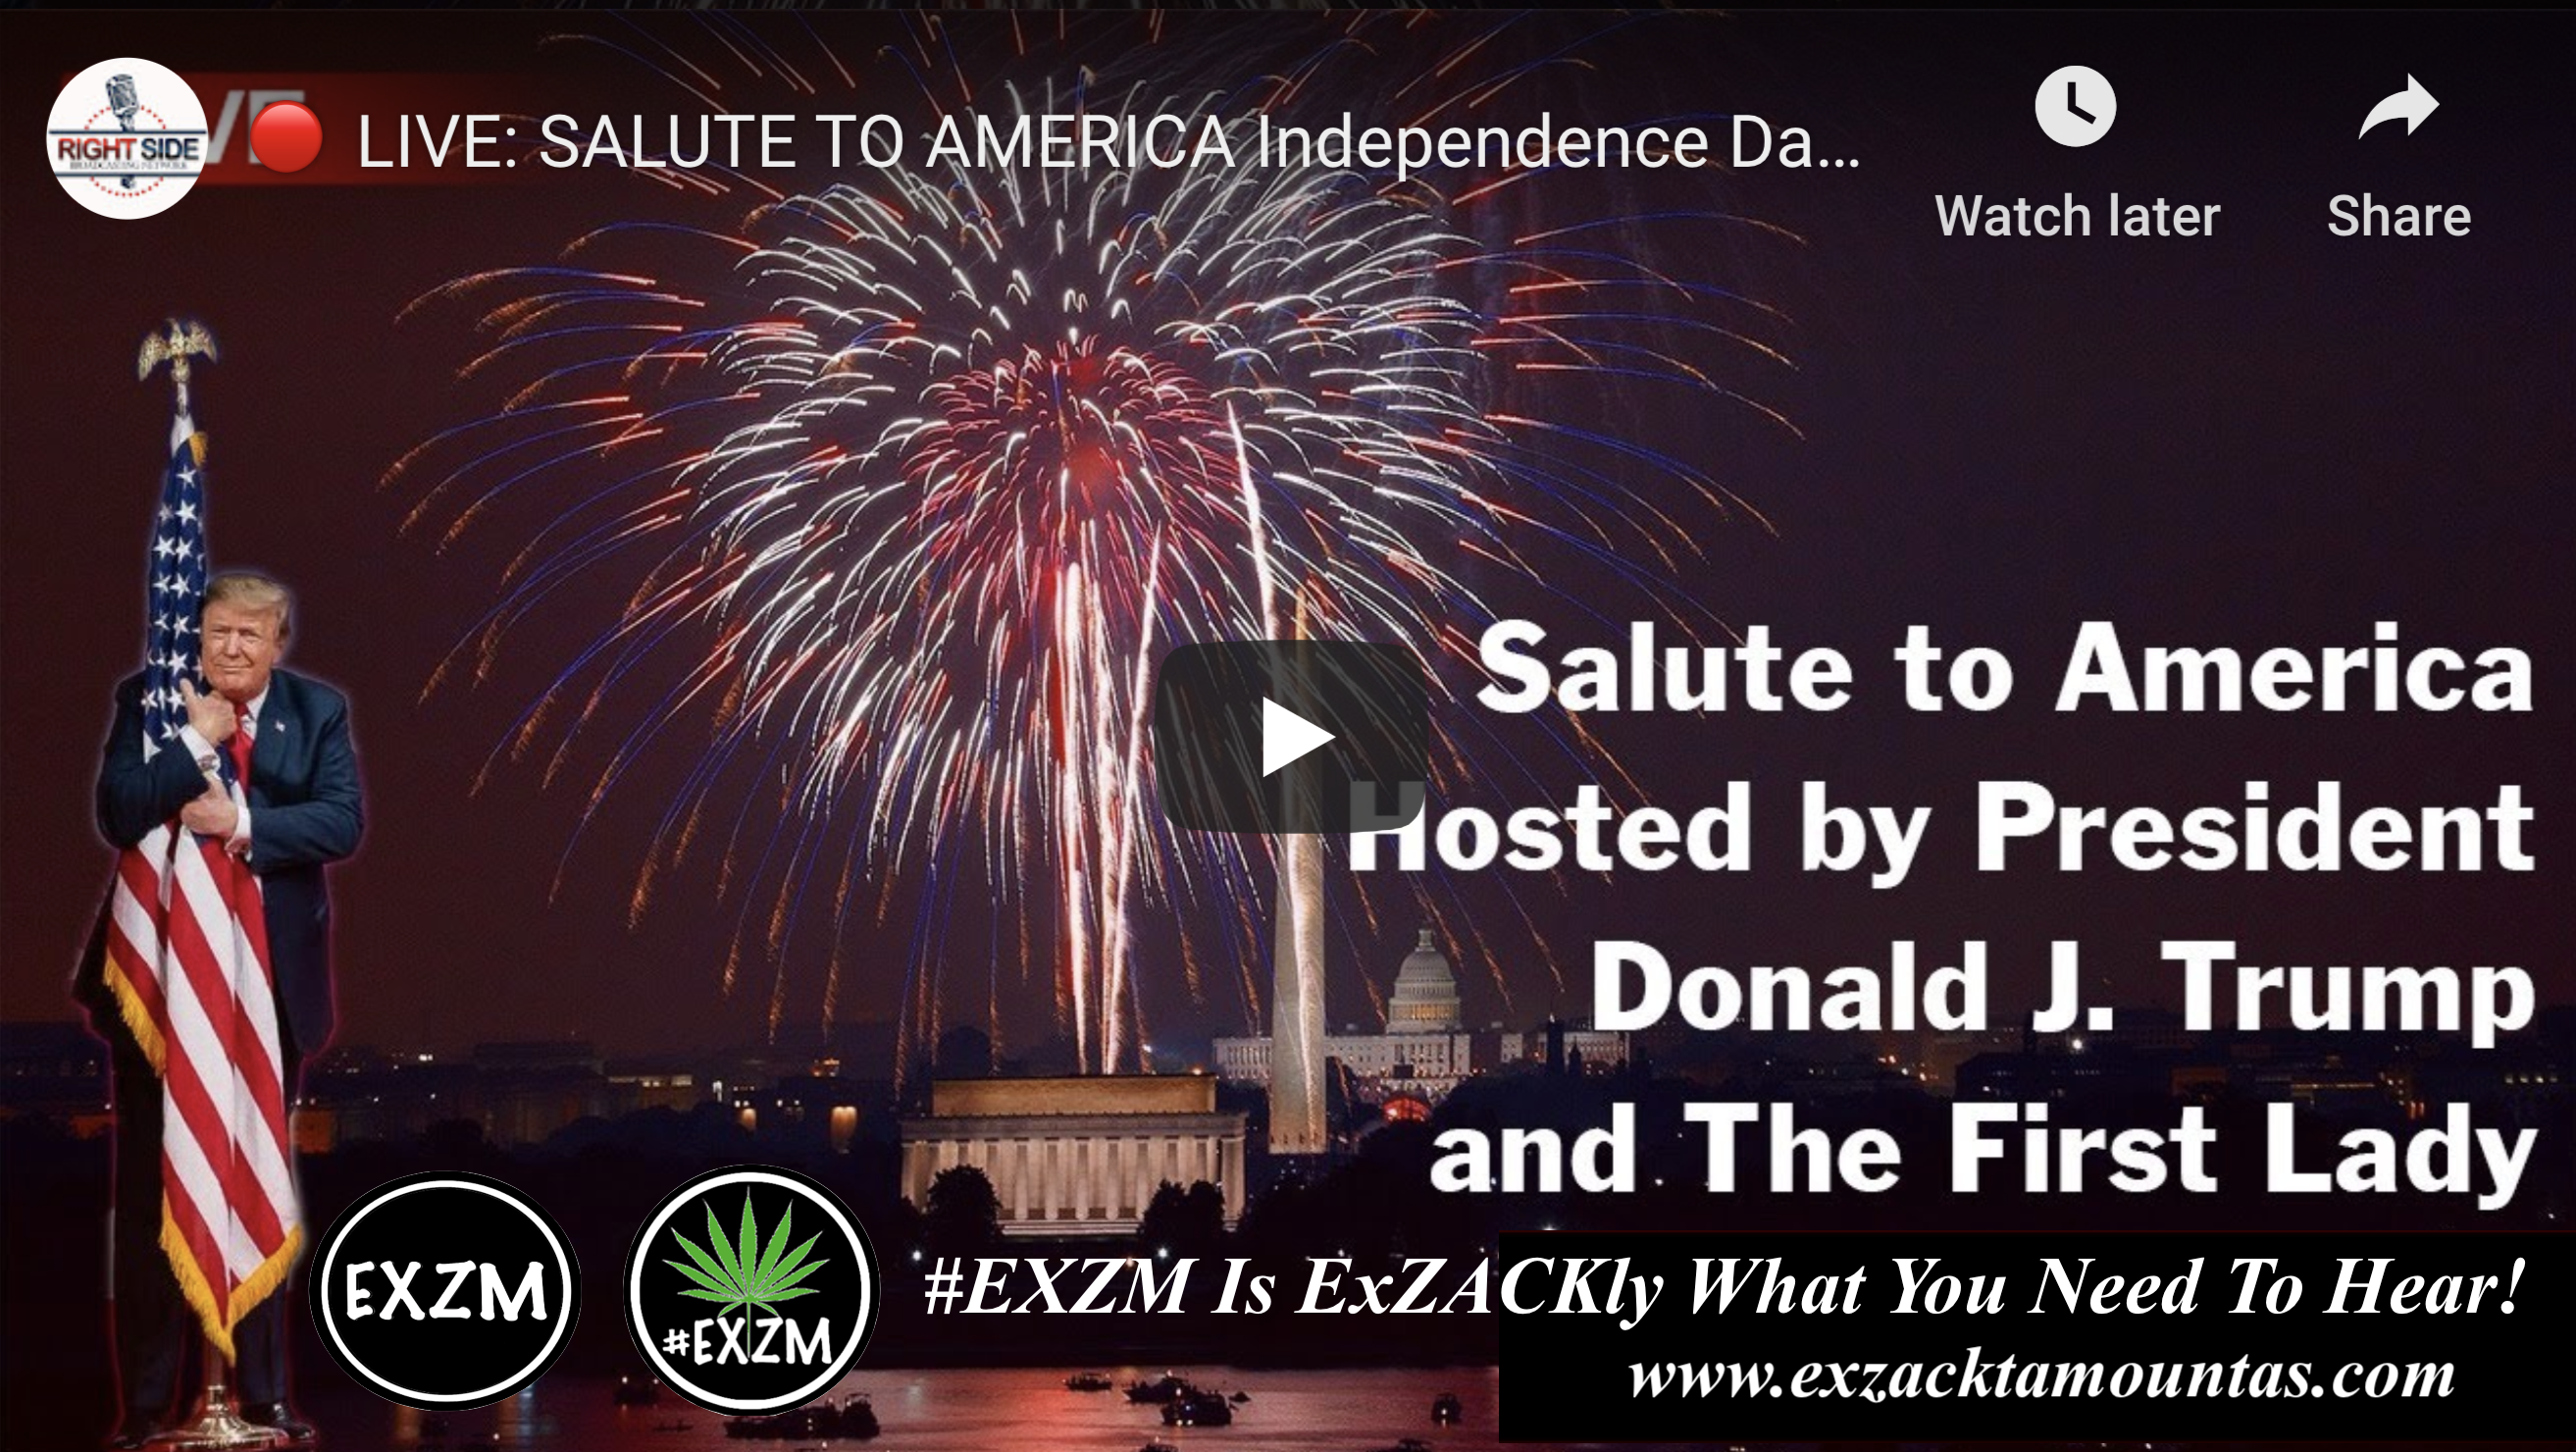 President Trump Independence Day Speech Salute To America Washington DC 4th of July 2020